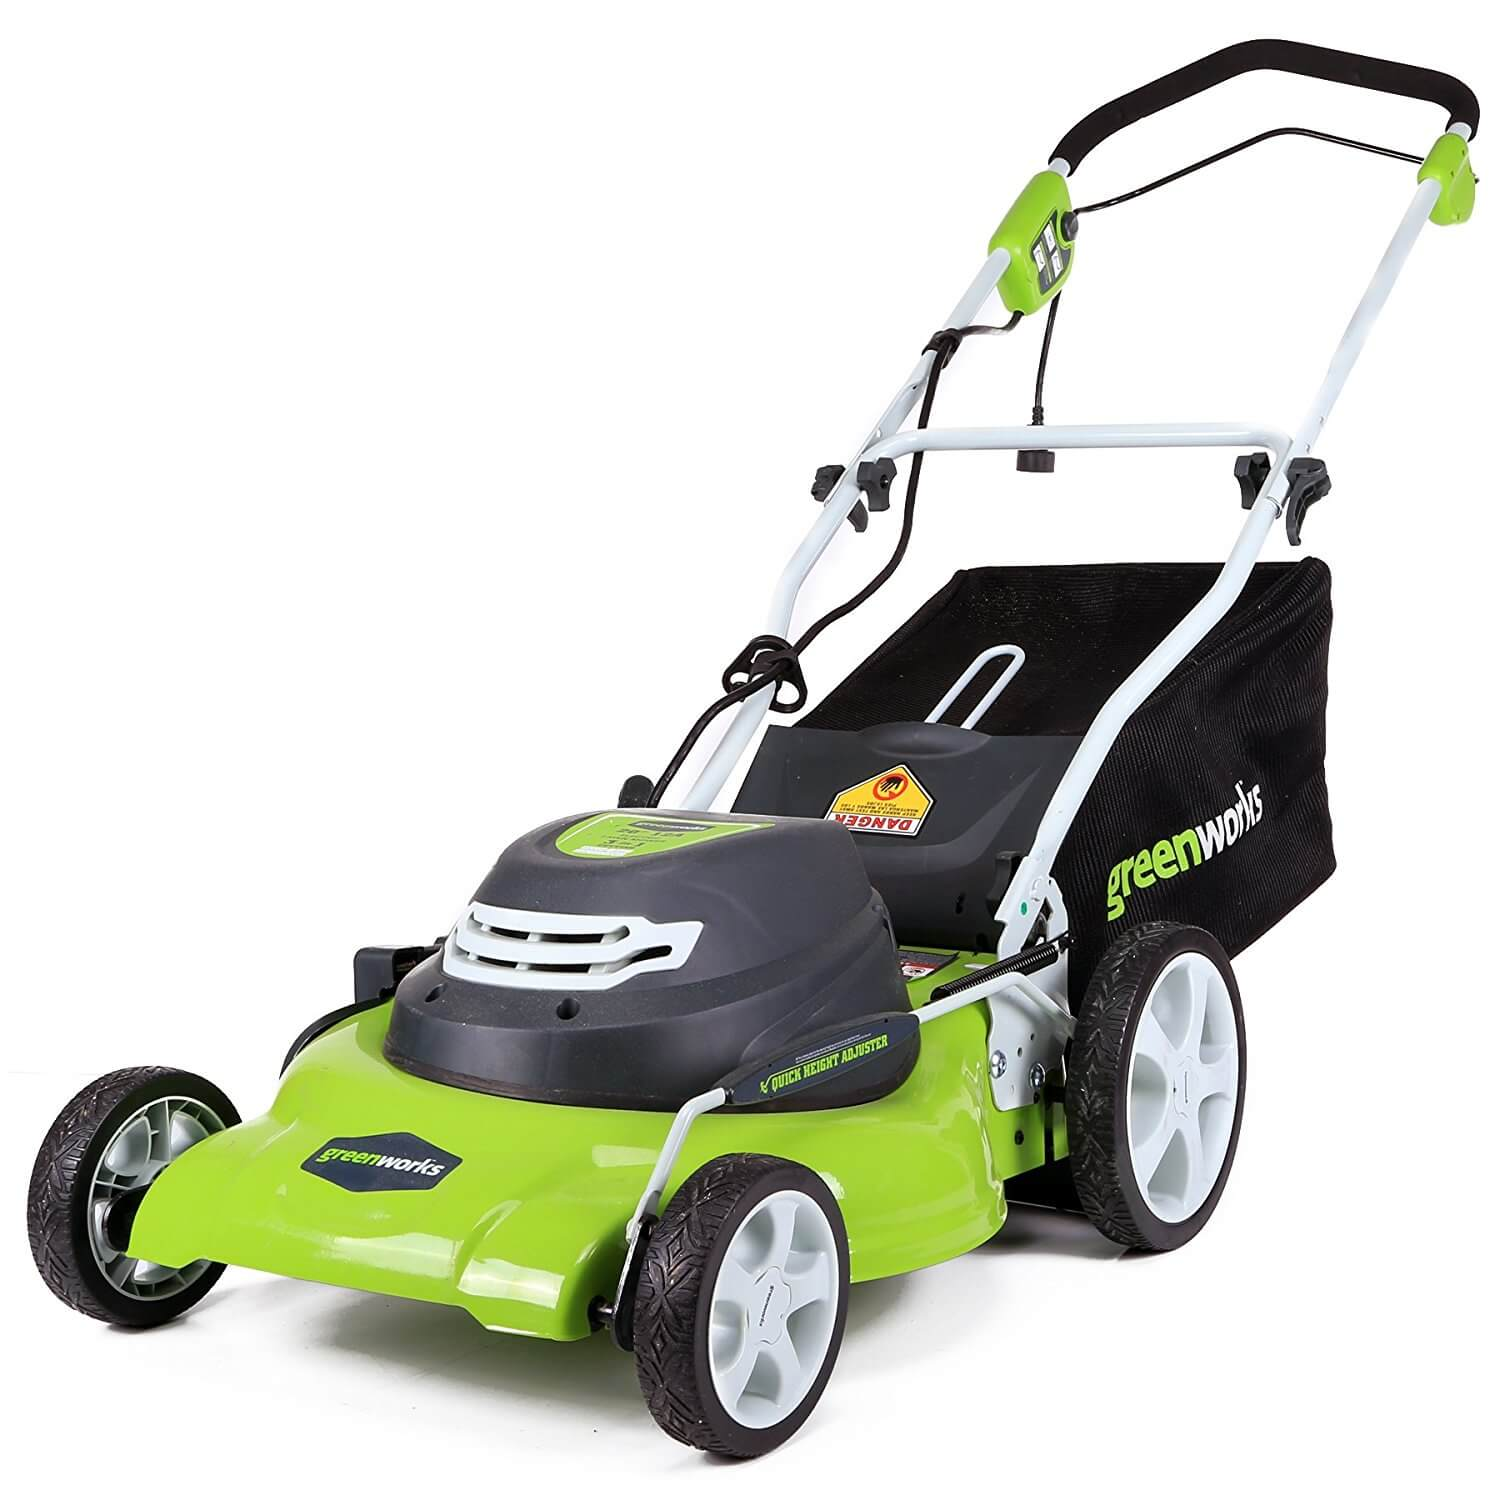 Battery Vs Gas Lawn Mower Which Is The Best